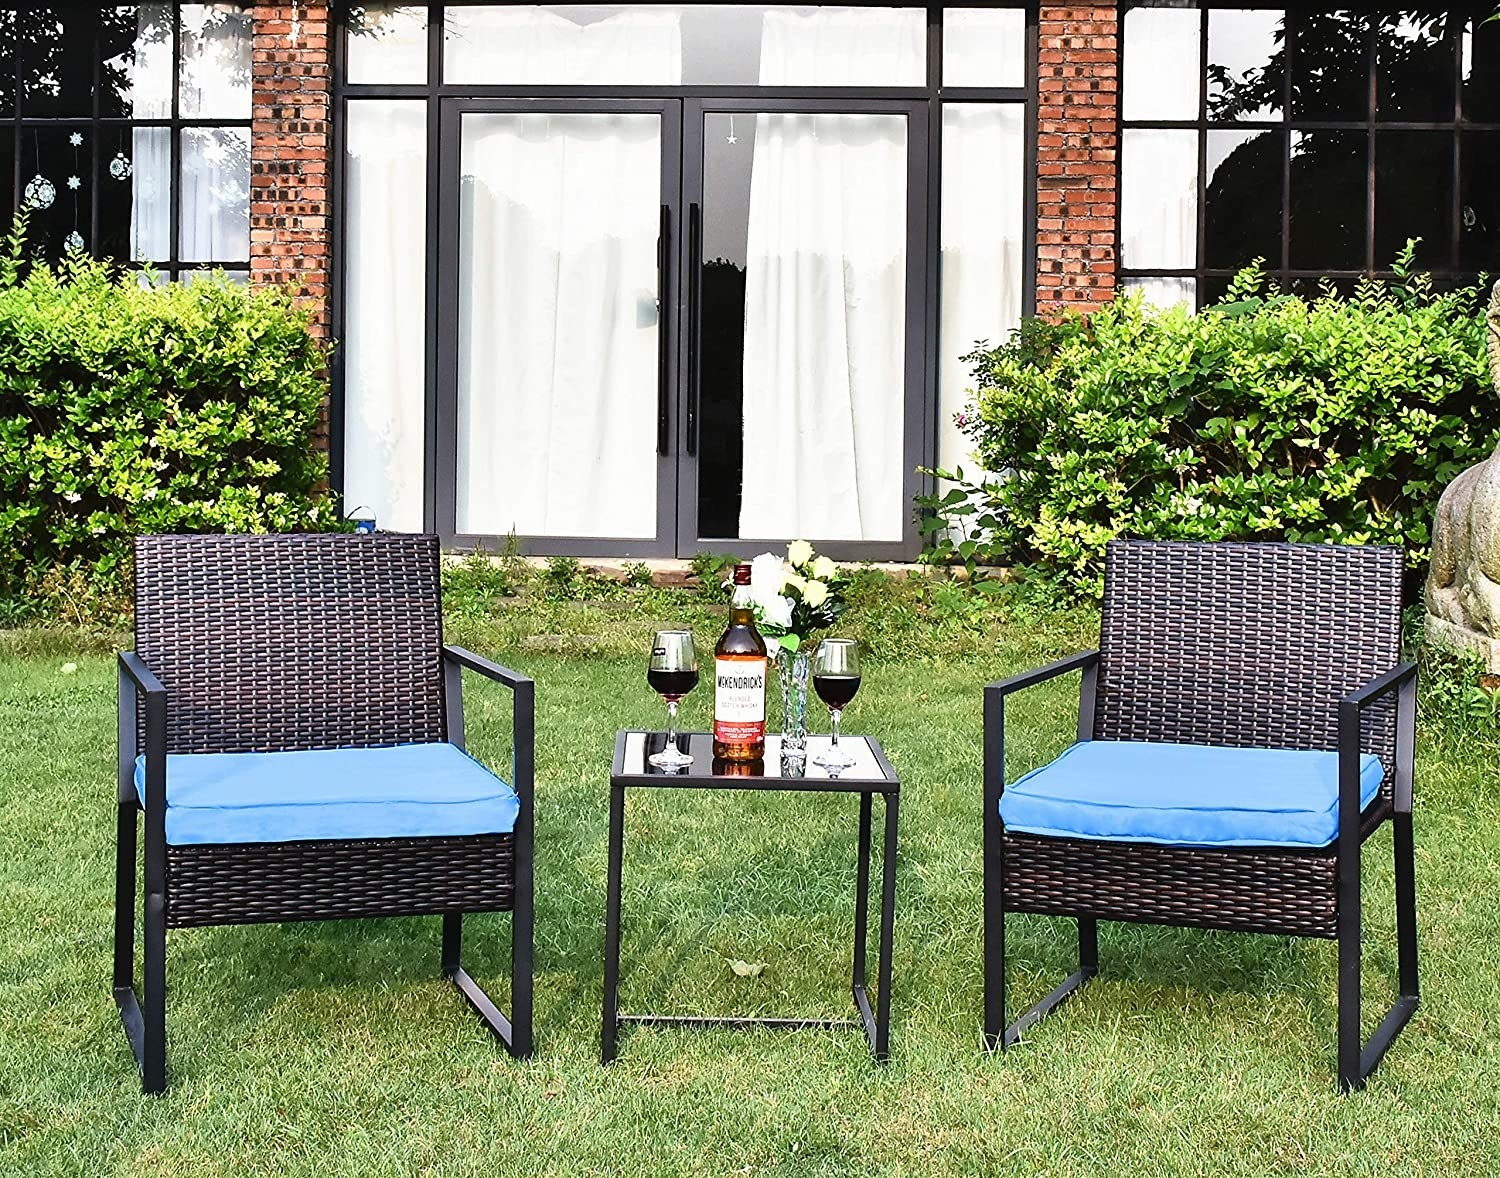 two basket woven look arm chairs with blue cushions and a side table with a glass top in a yard